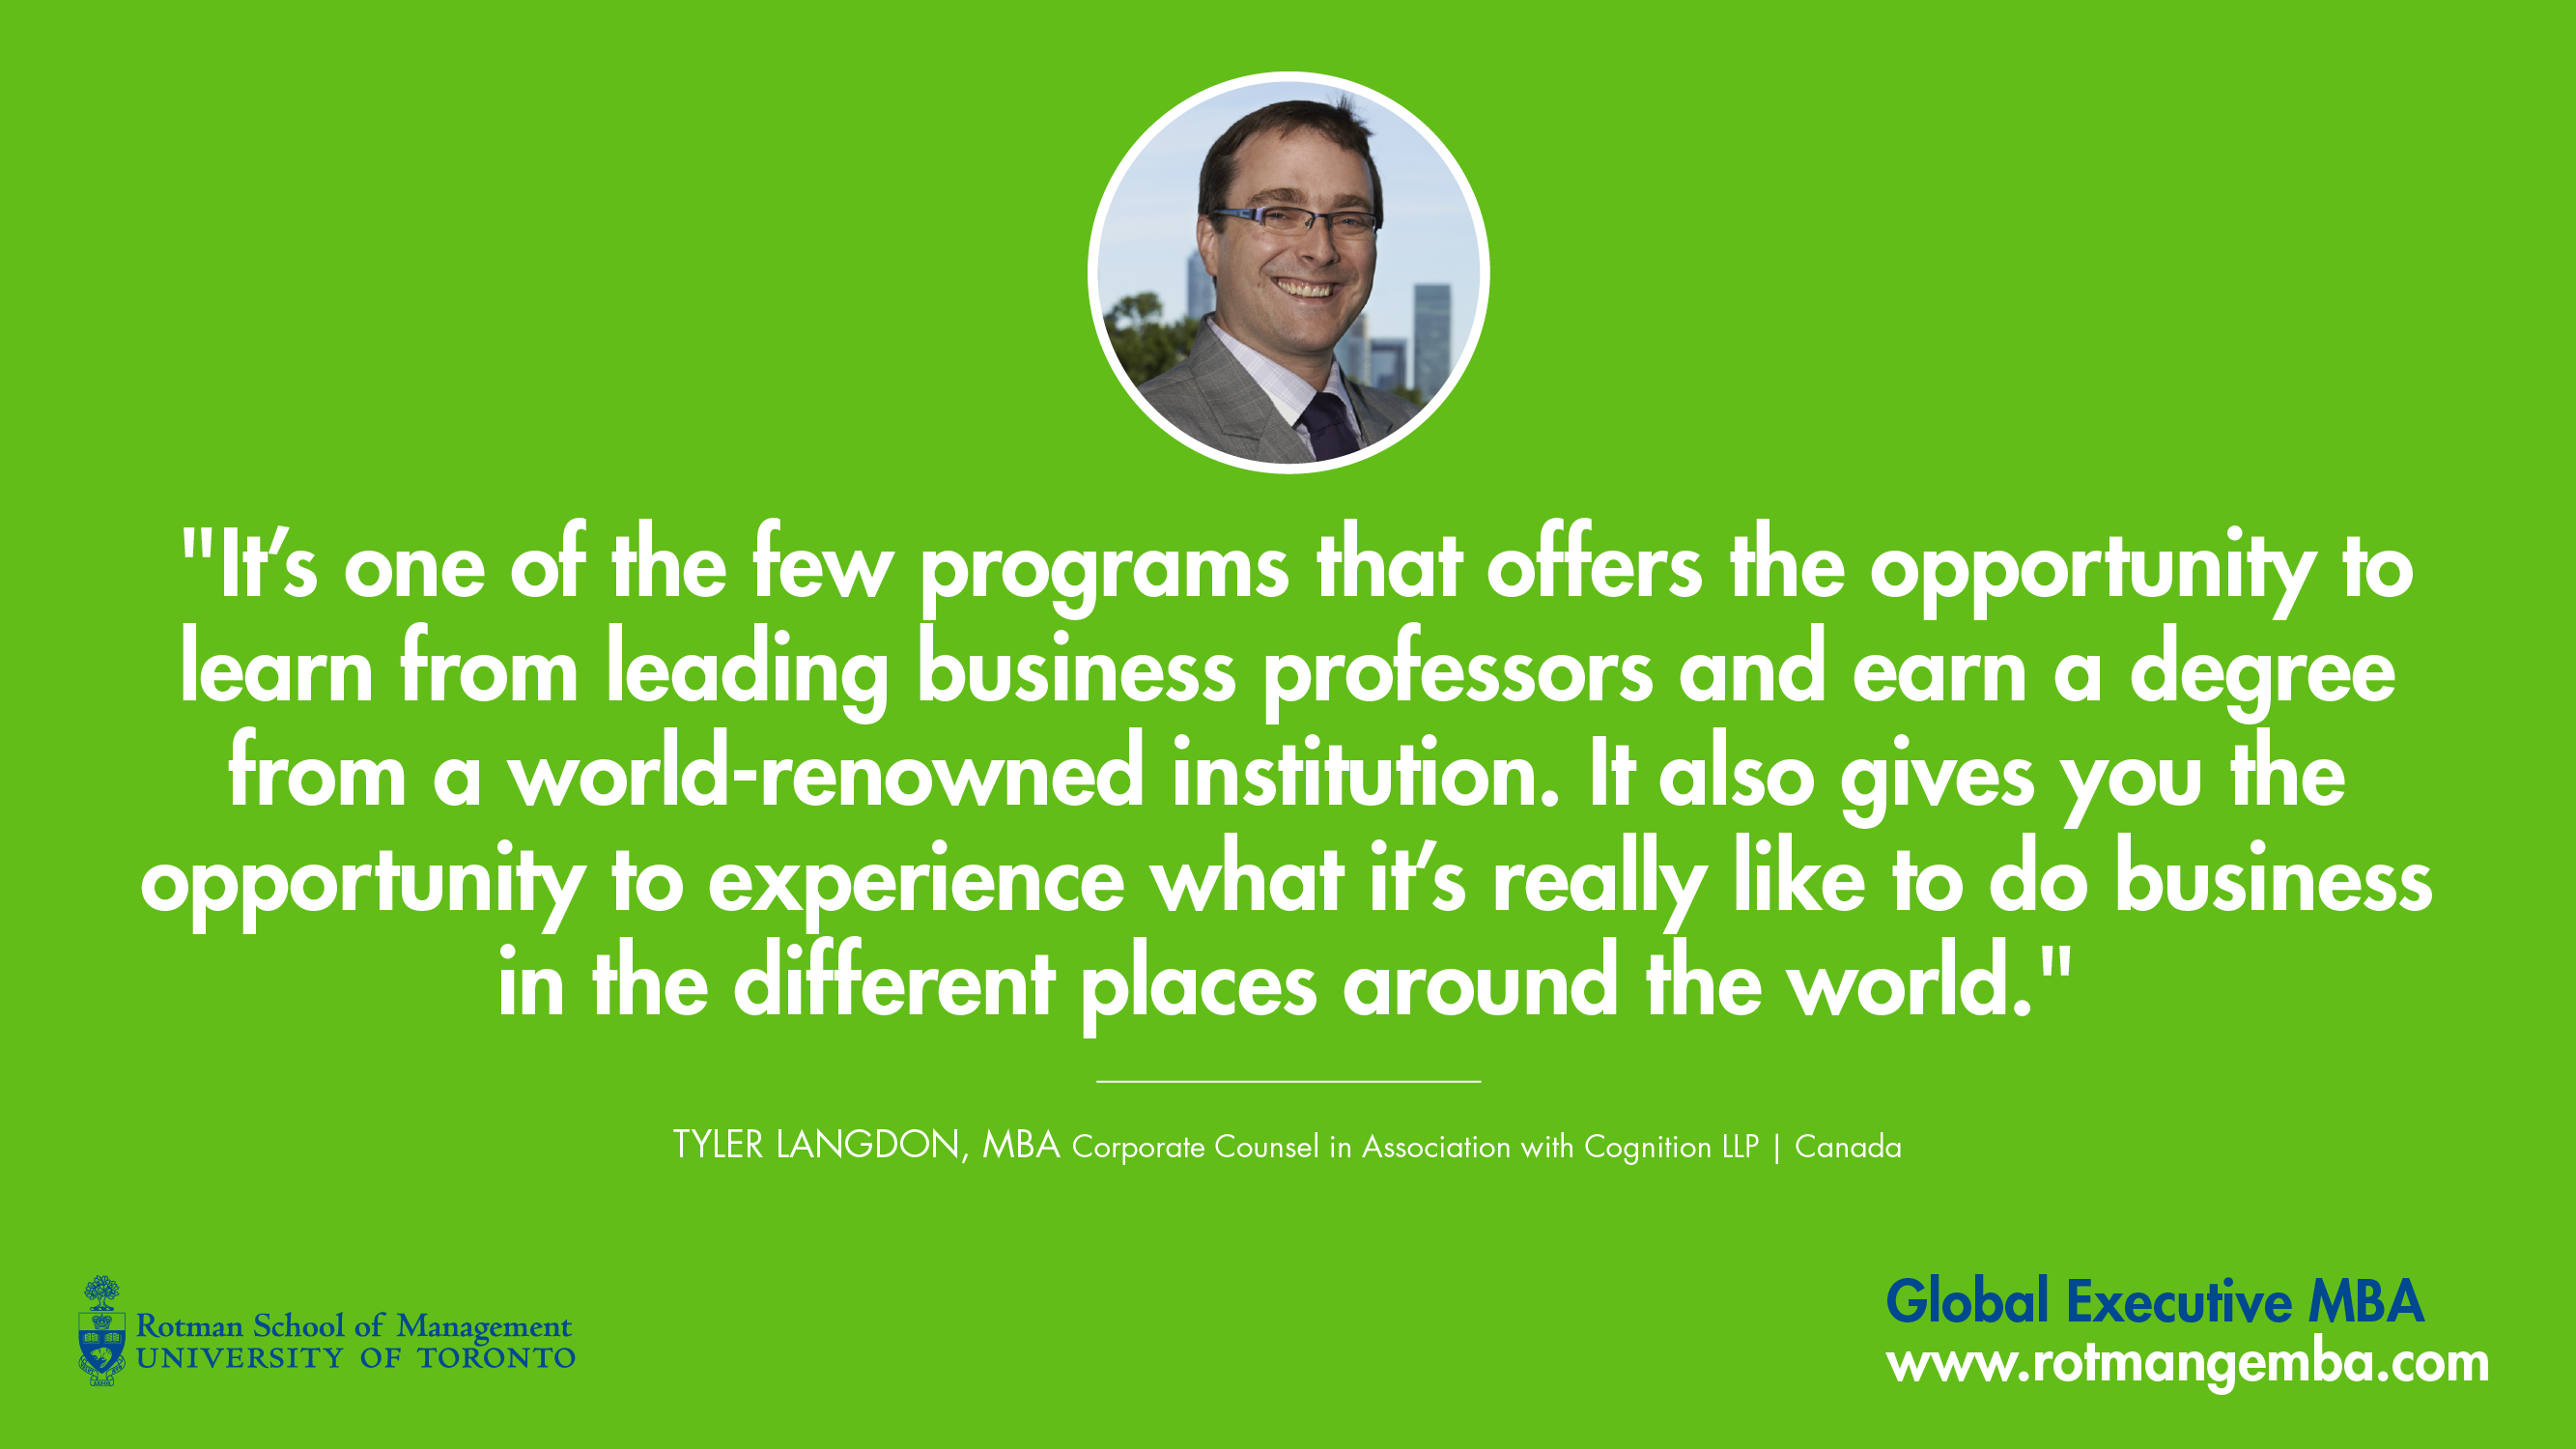 global executive mba emba rotman school of management tyler langdon